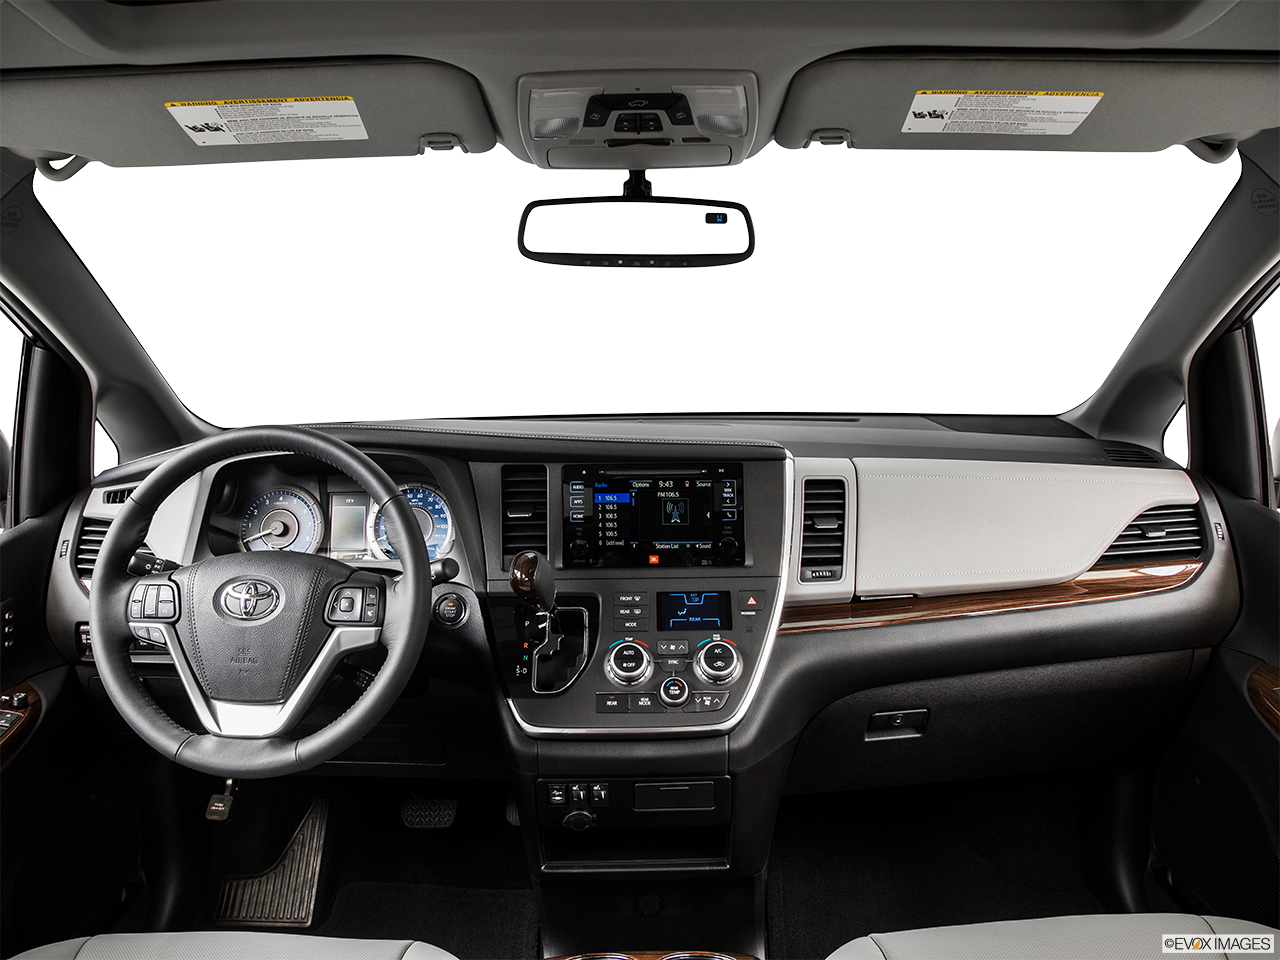 Interior View Of 2015 Toyota Sienna In Hampton Roads